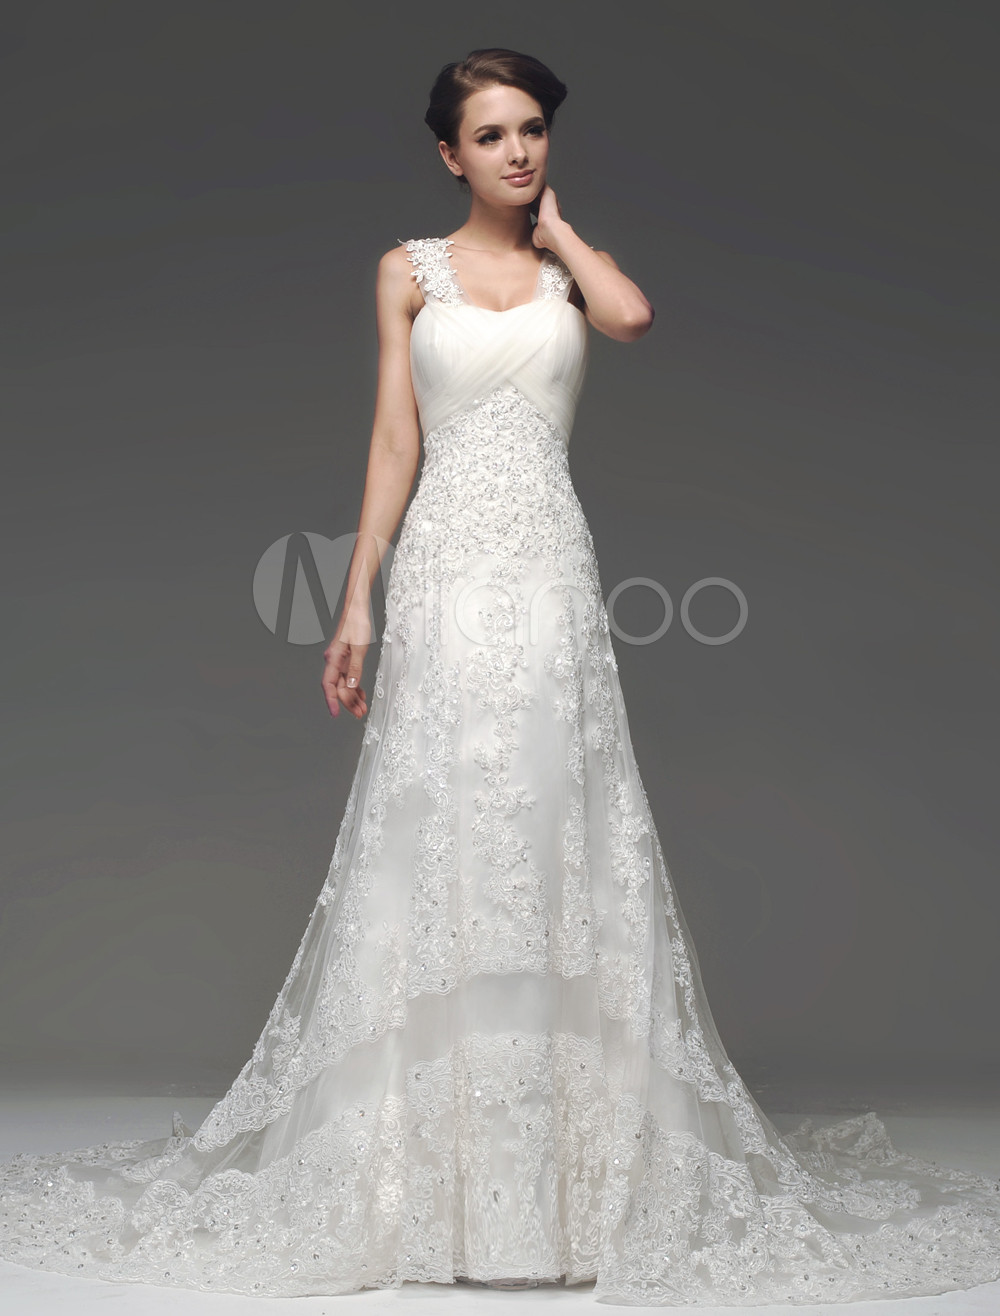 Court Train Ivory Straps Neck A-line Pleated Bridal Wedding Gown